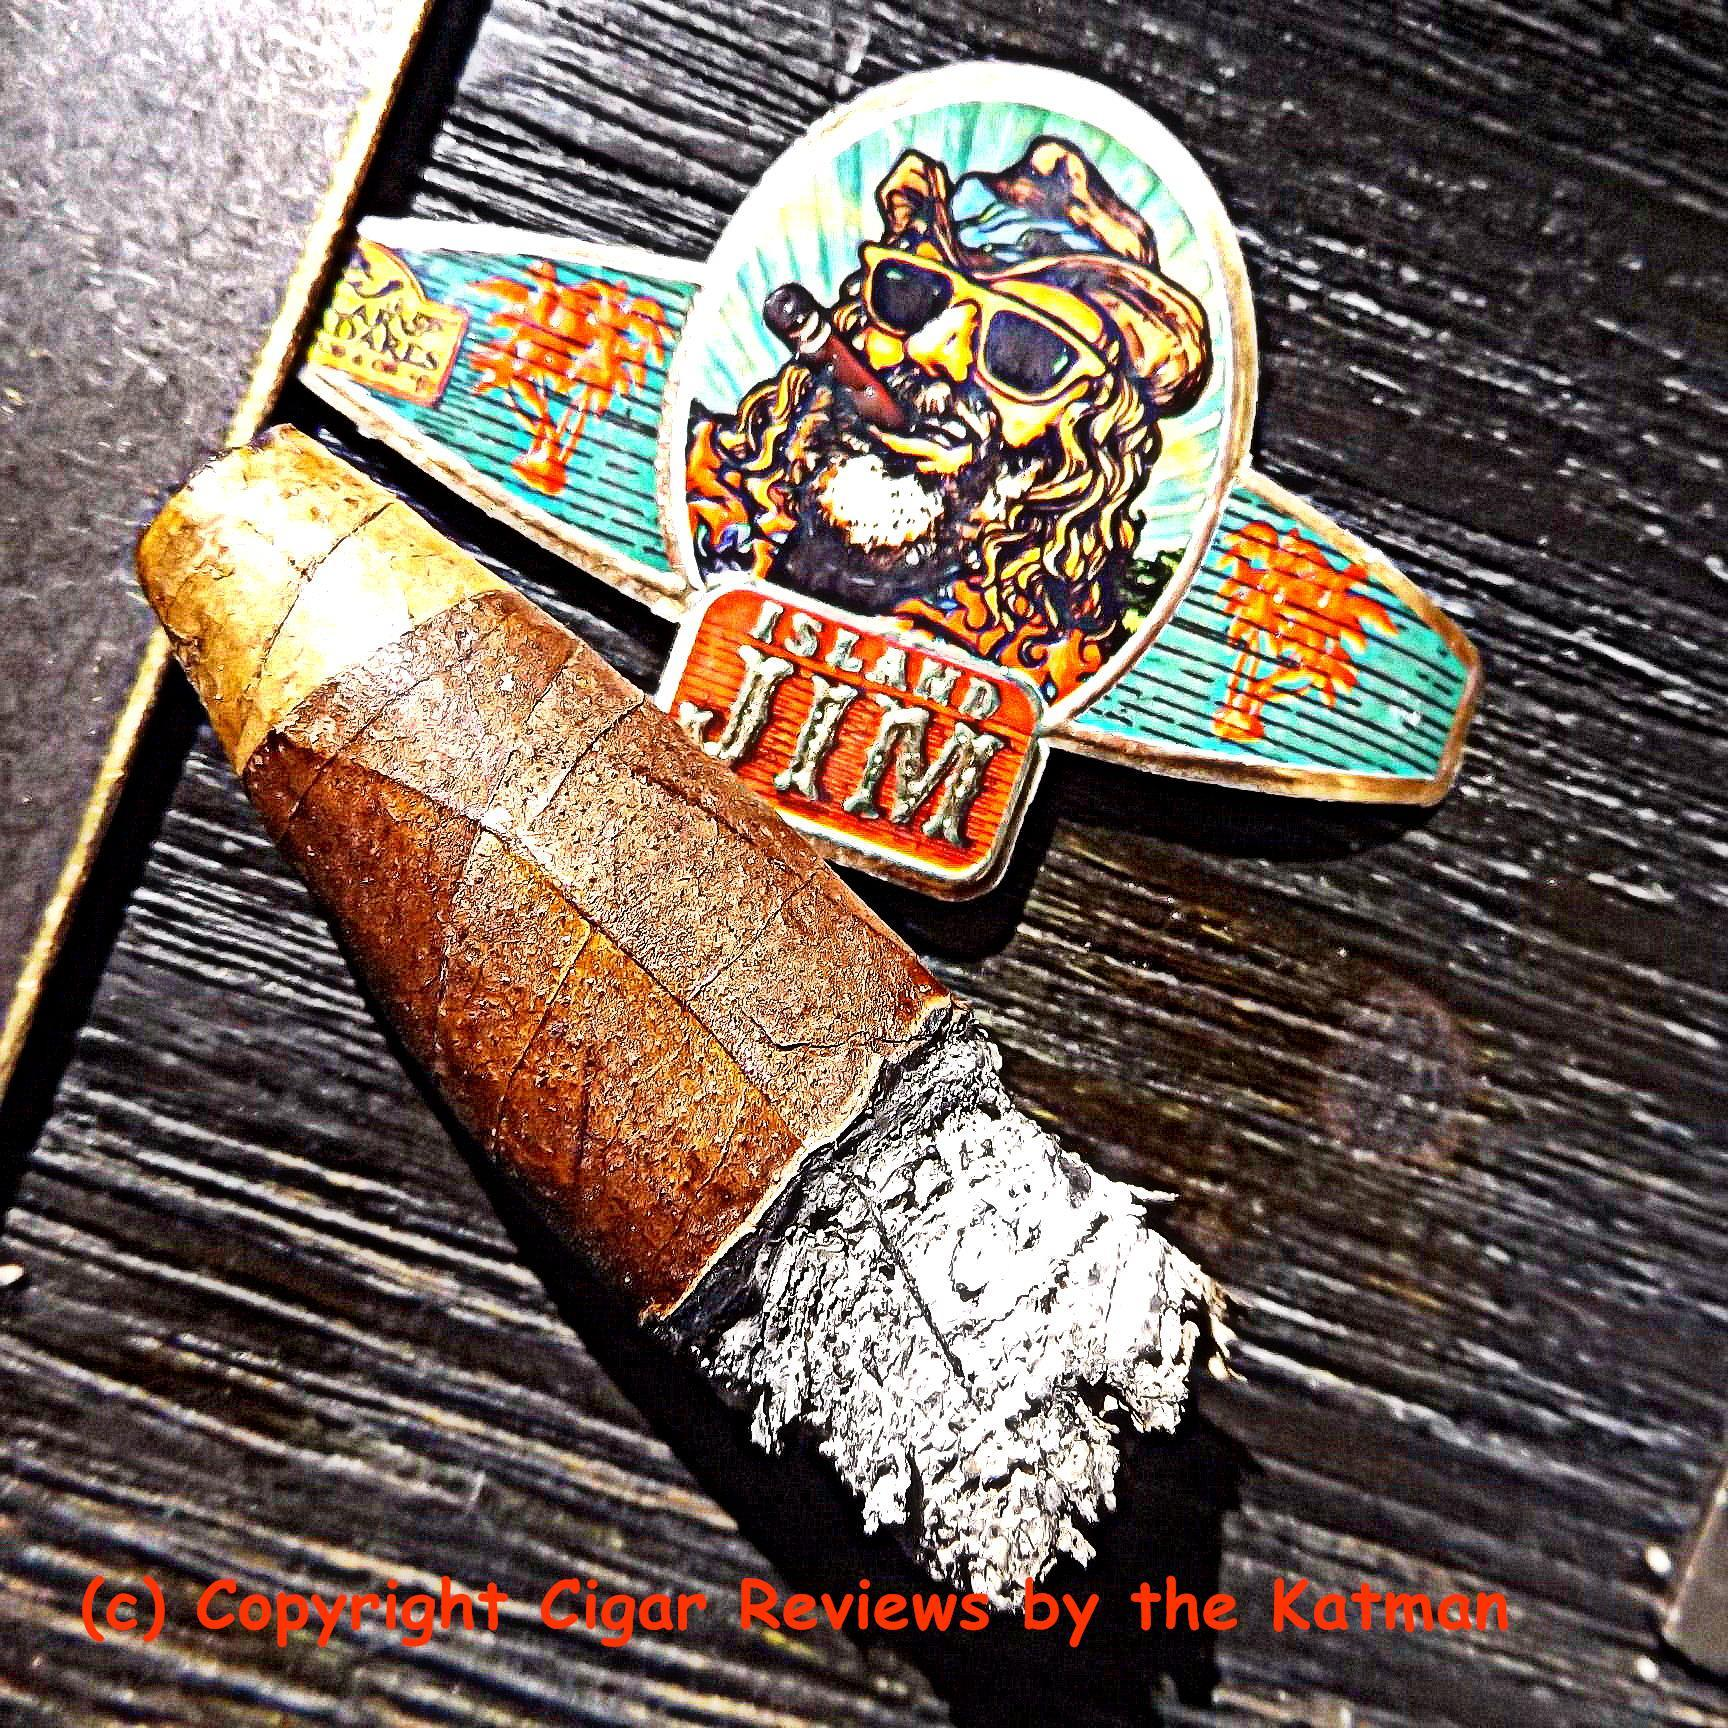 9a3c0c2647 Taking huge sips of water helps bring back the flavor profile temporarily.  The Island Jim  2 by Oscar Valladares ends very cool. No nicotine.